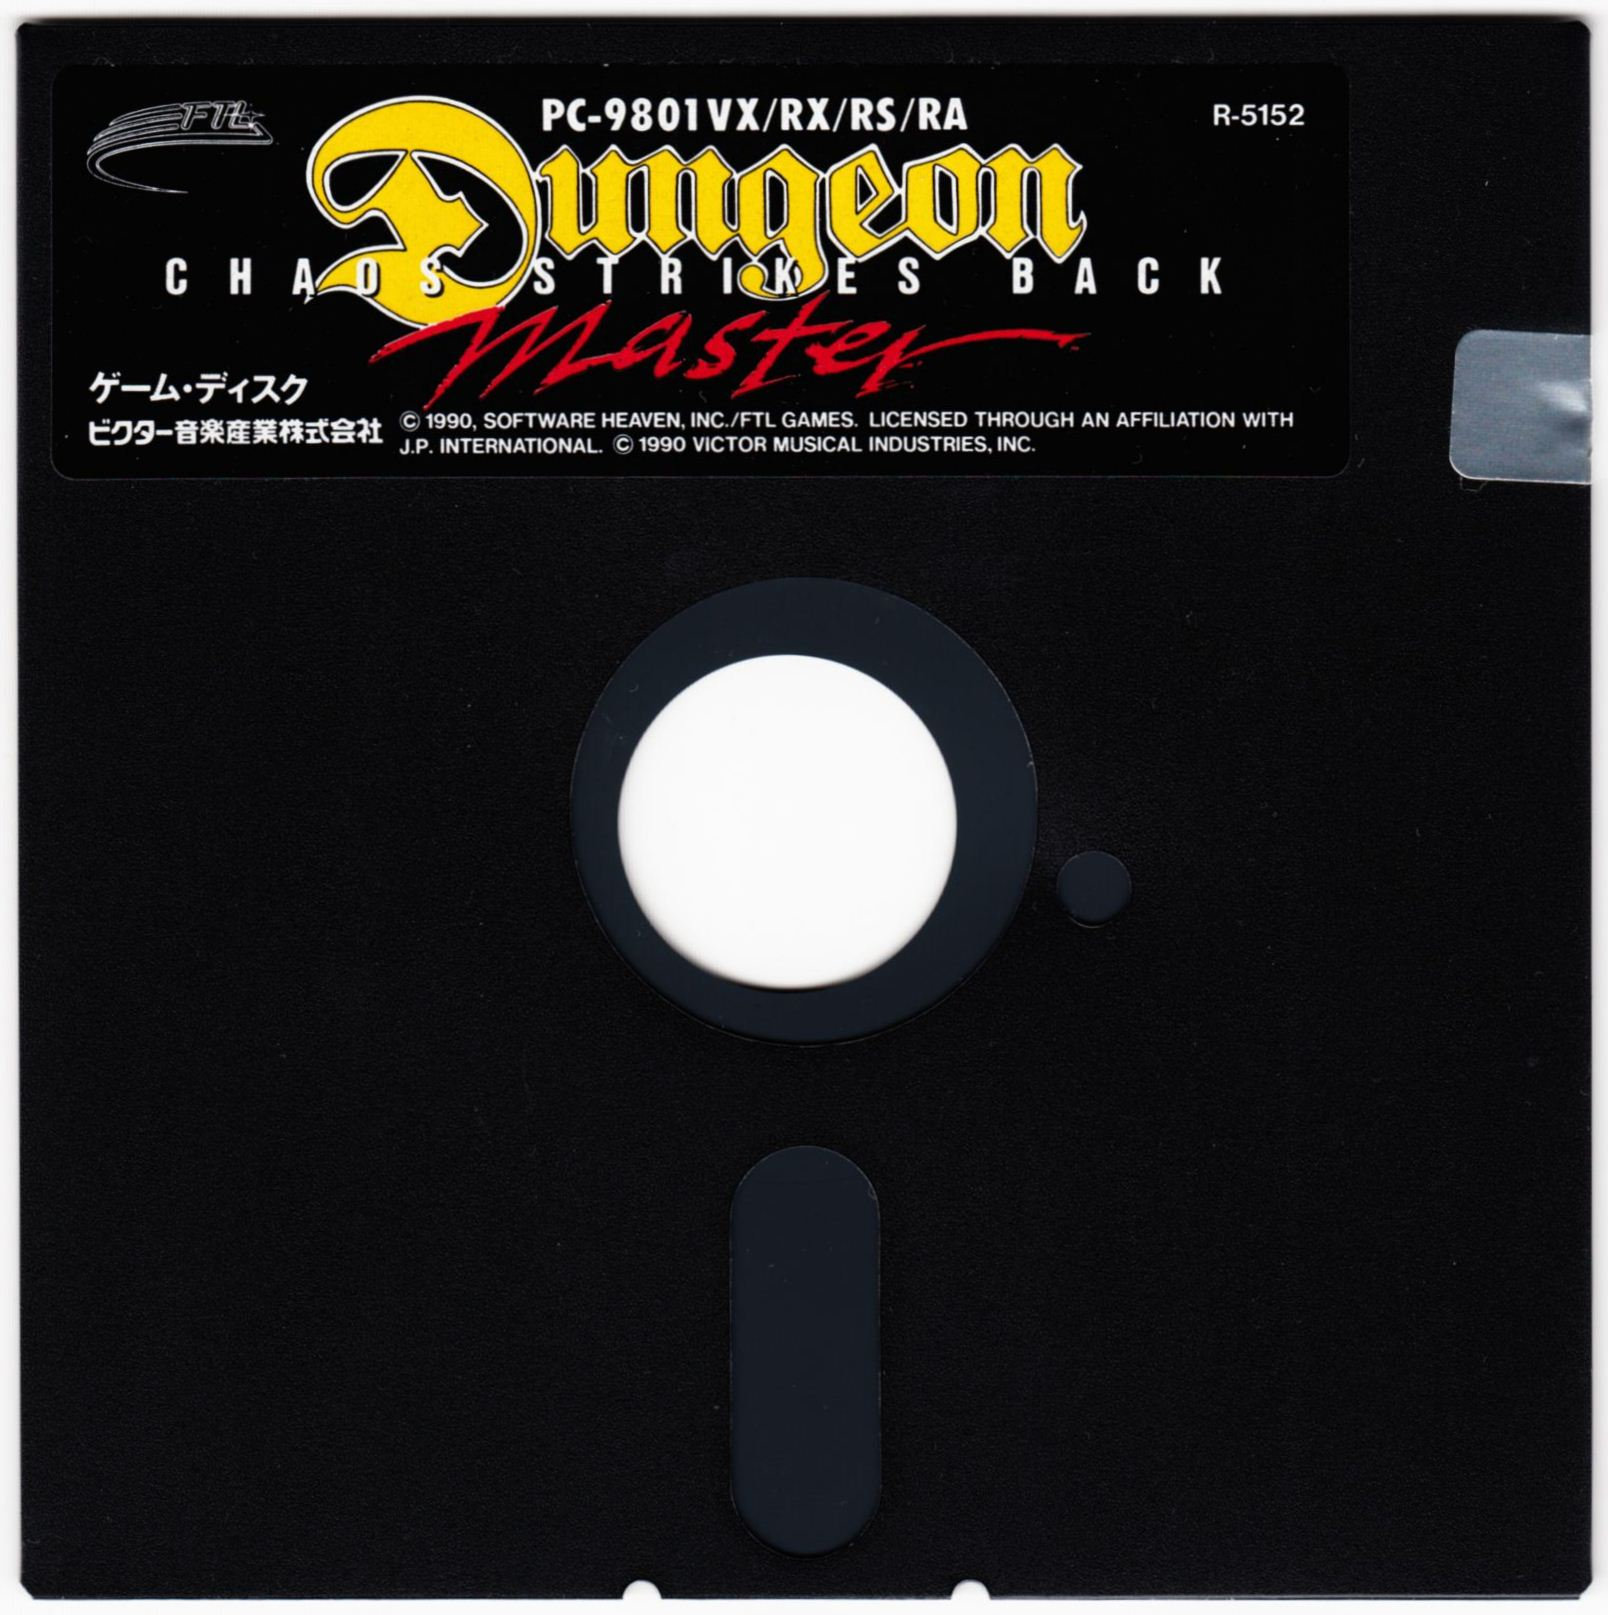 Game - Chaos Strikes Back - JP - PC-9801 - 5.25-inch - Game Disk - Front - Scan